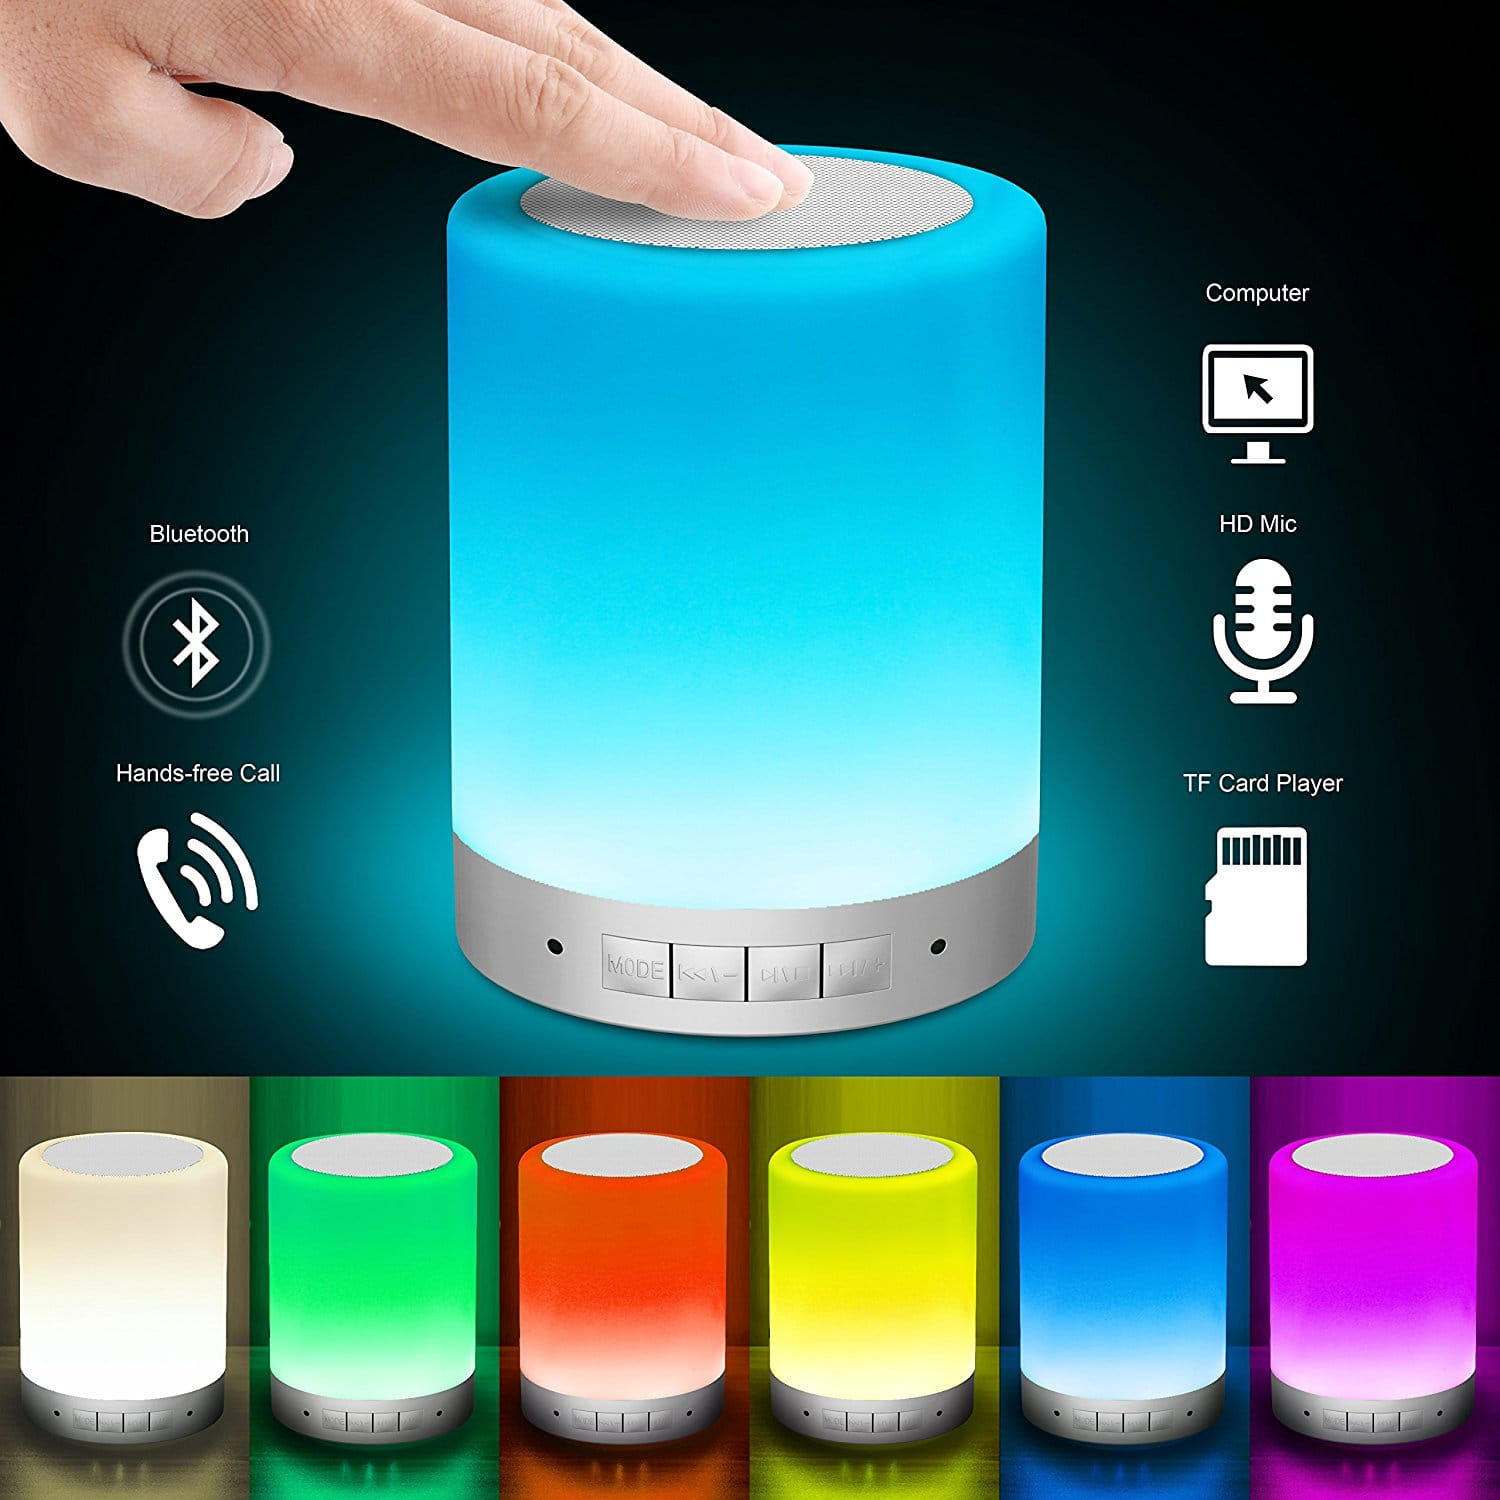 Touch Control Table Lamp with Wireless Bluetooth Speaker $13.57